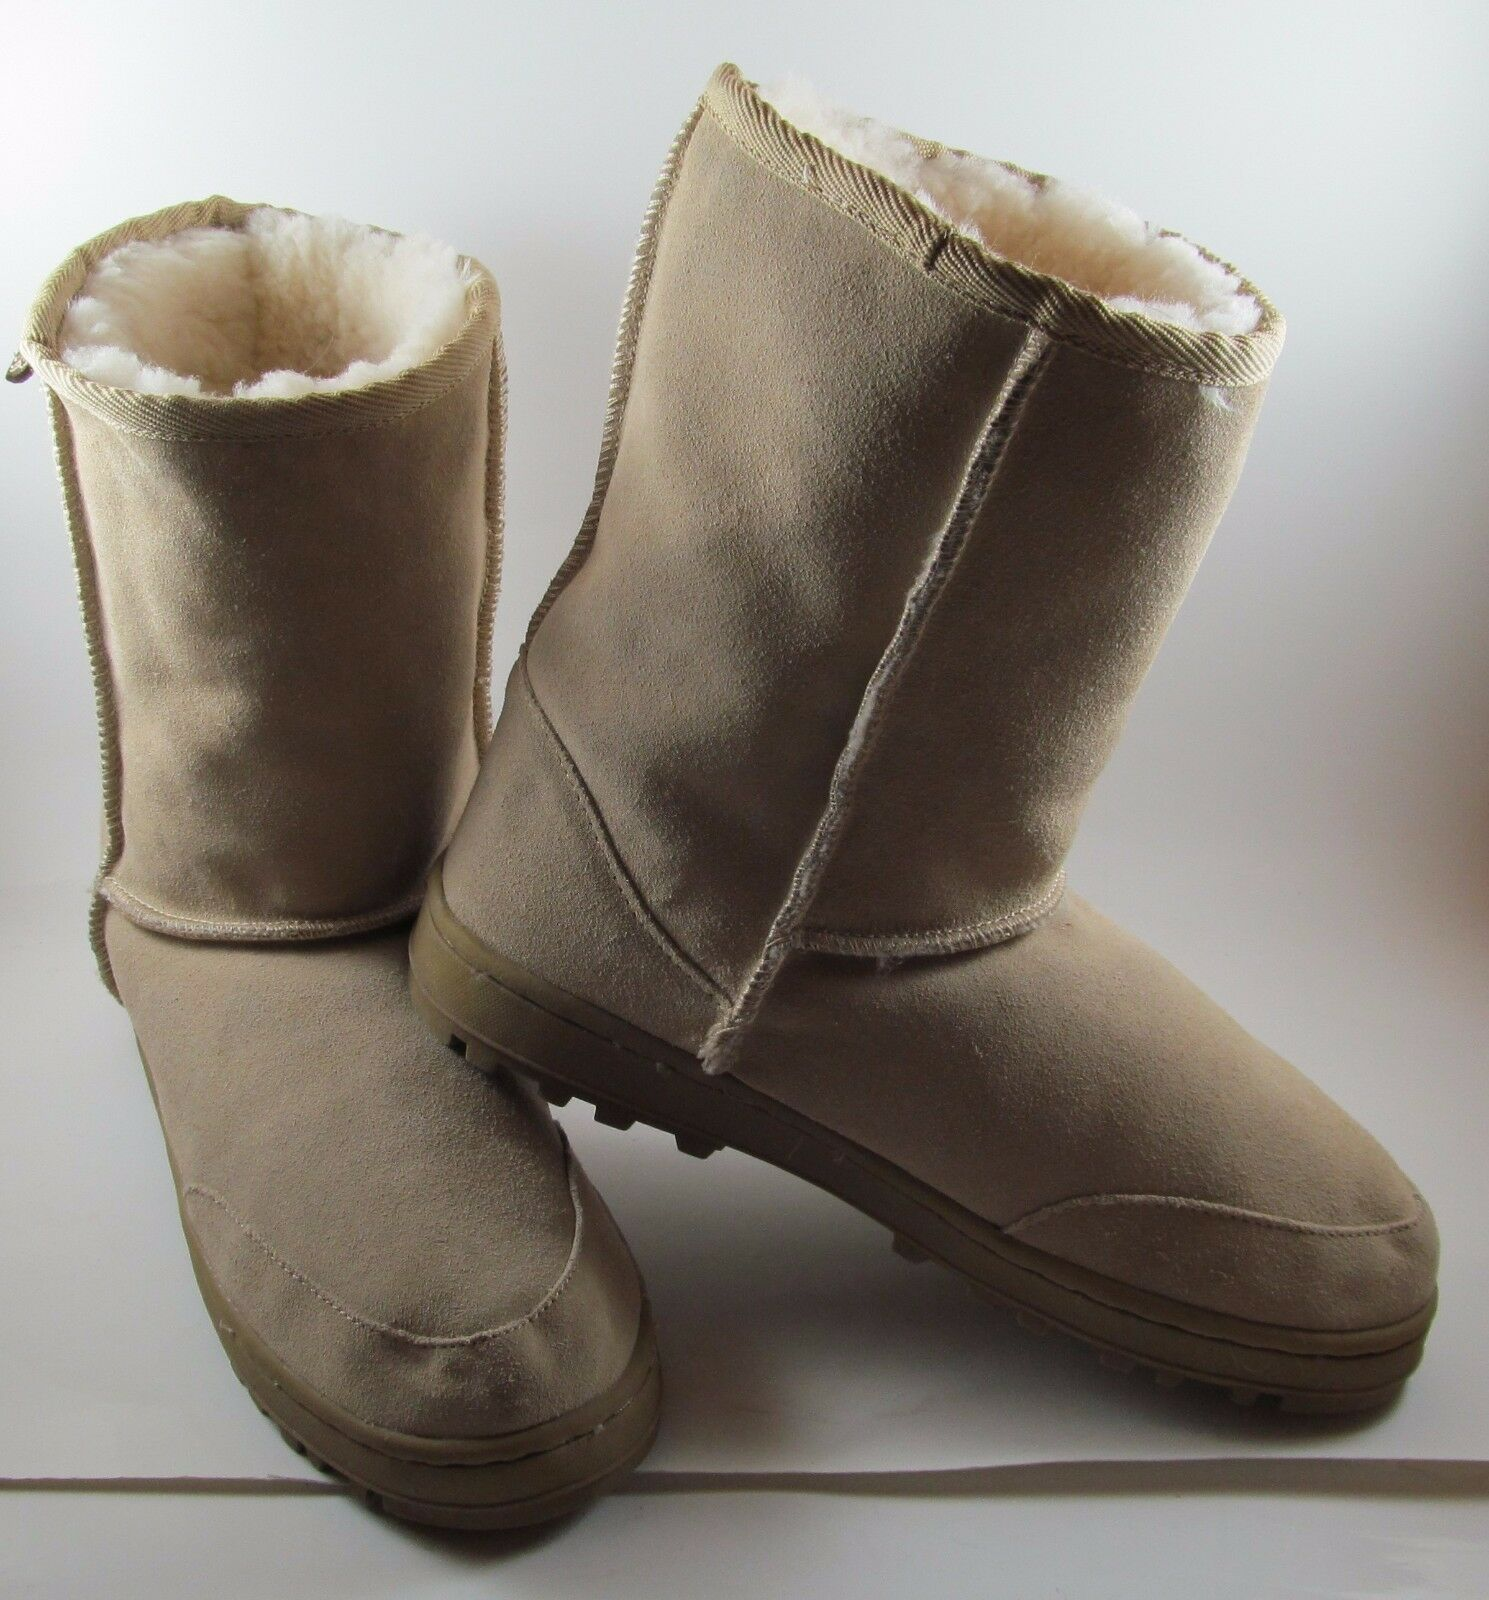 AUSTRALIAN BOOT COMPANY Womens 8 M Cow Suede Upper Sheep fur lining brown